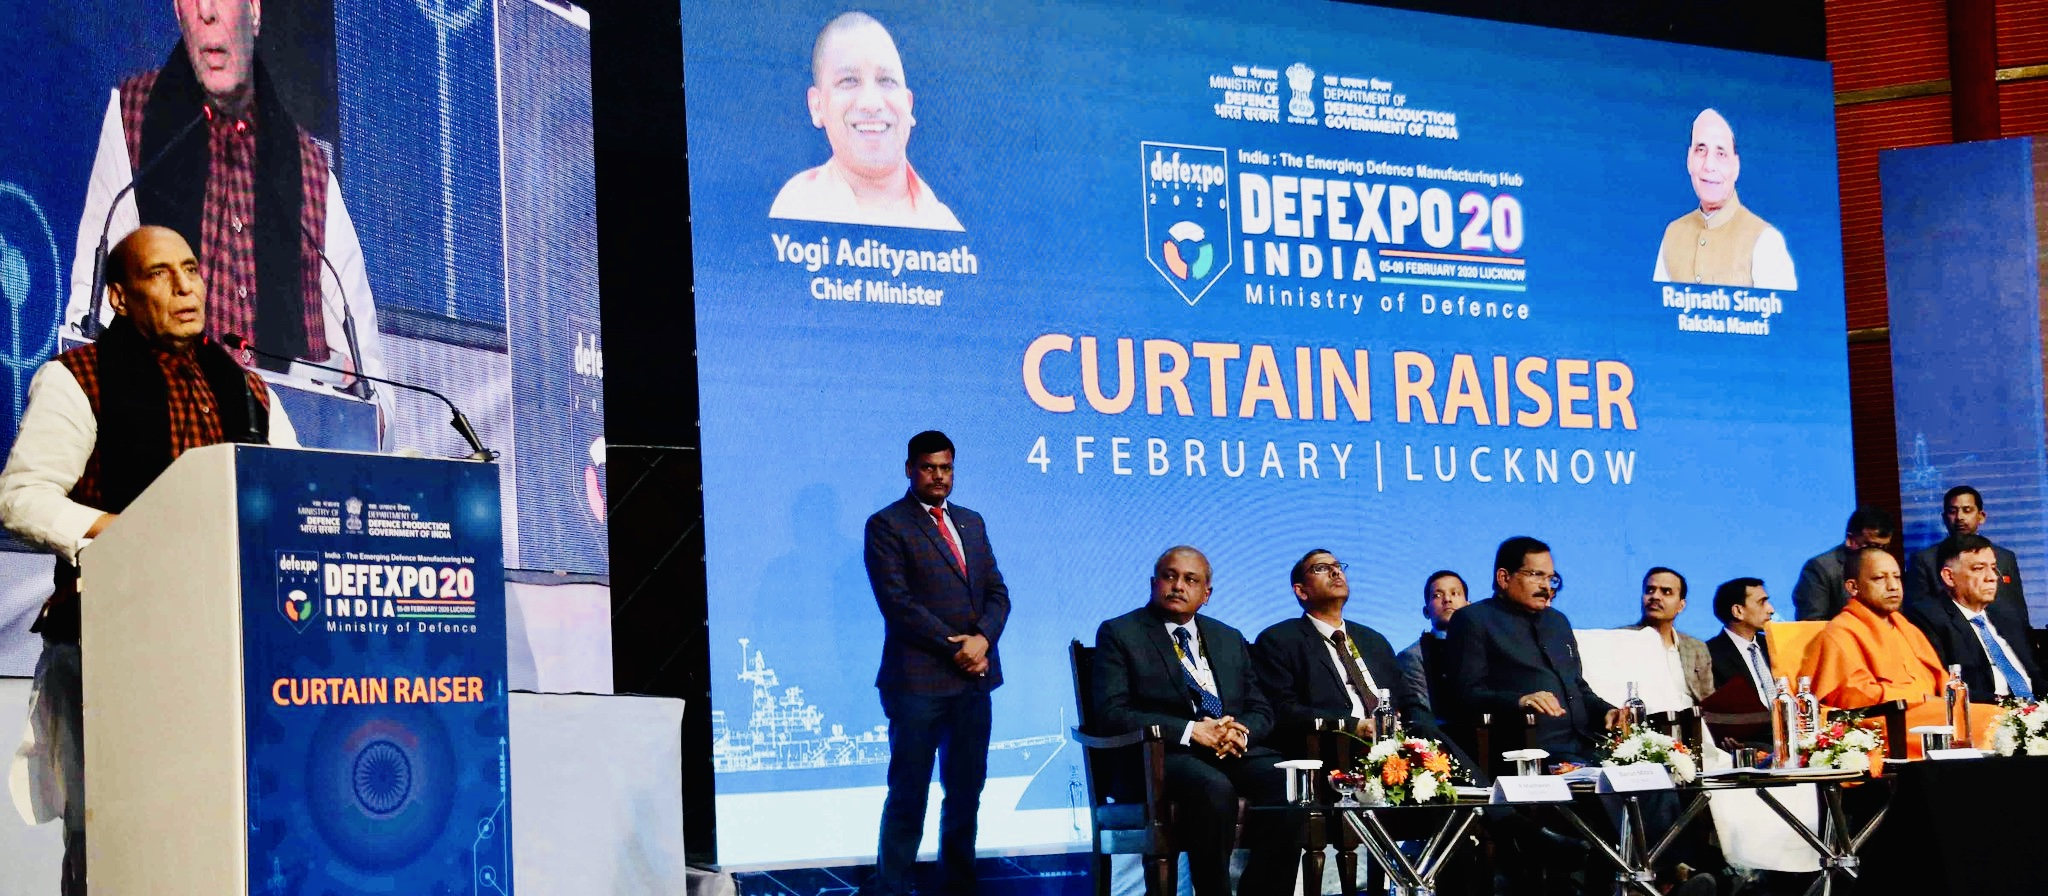 Huge participations in DefExpo 2020 reflects India's Growing Stature: Rajnath